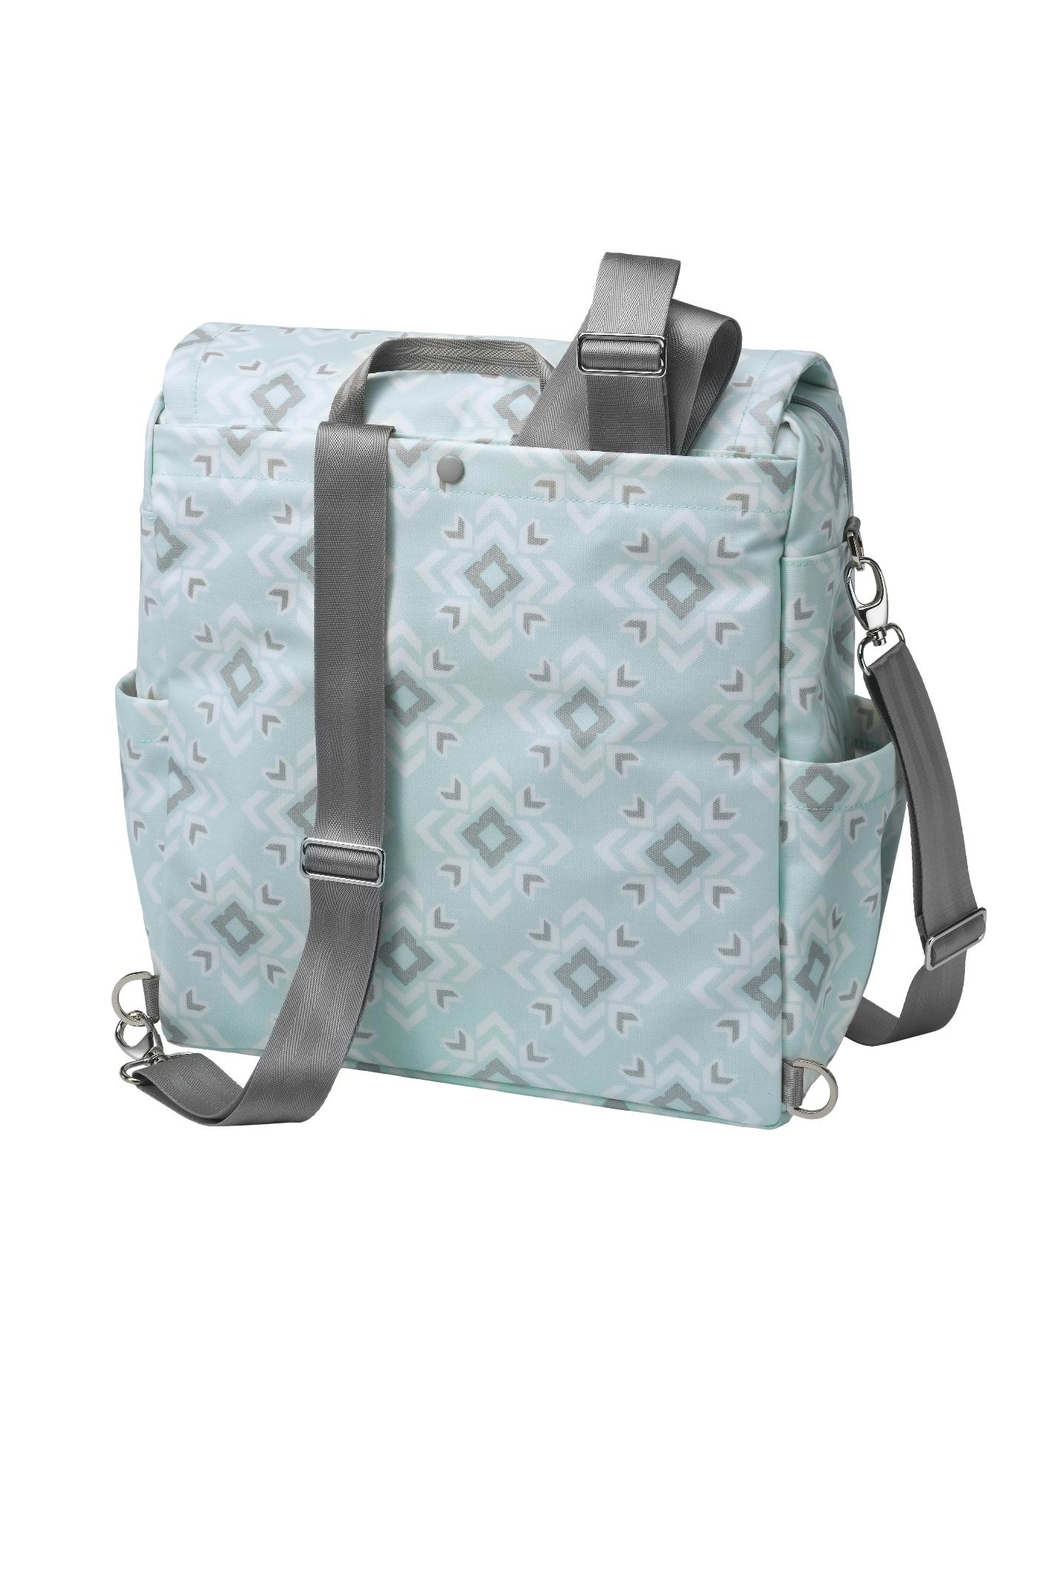 Petunia Pickle Bottom Diaper Bag Backpack - Front Full Image